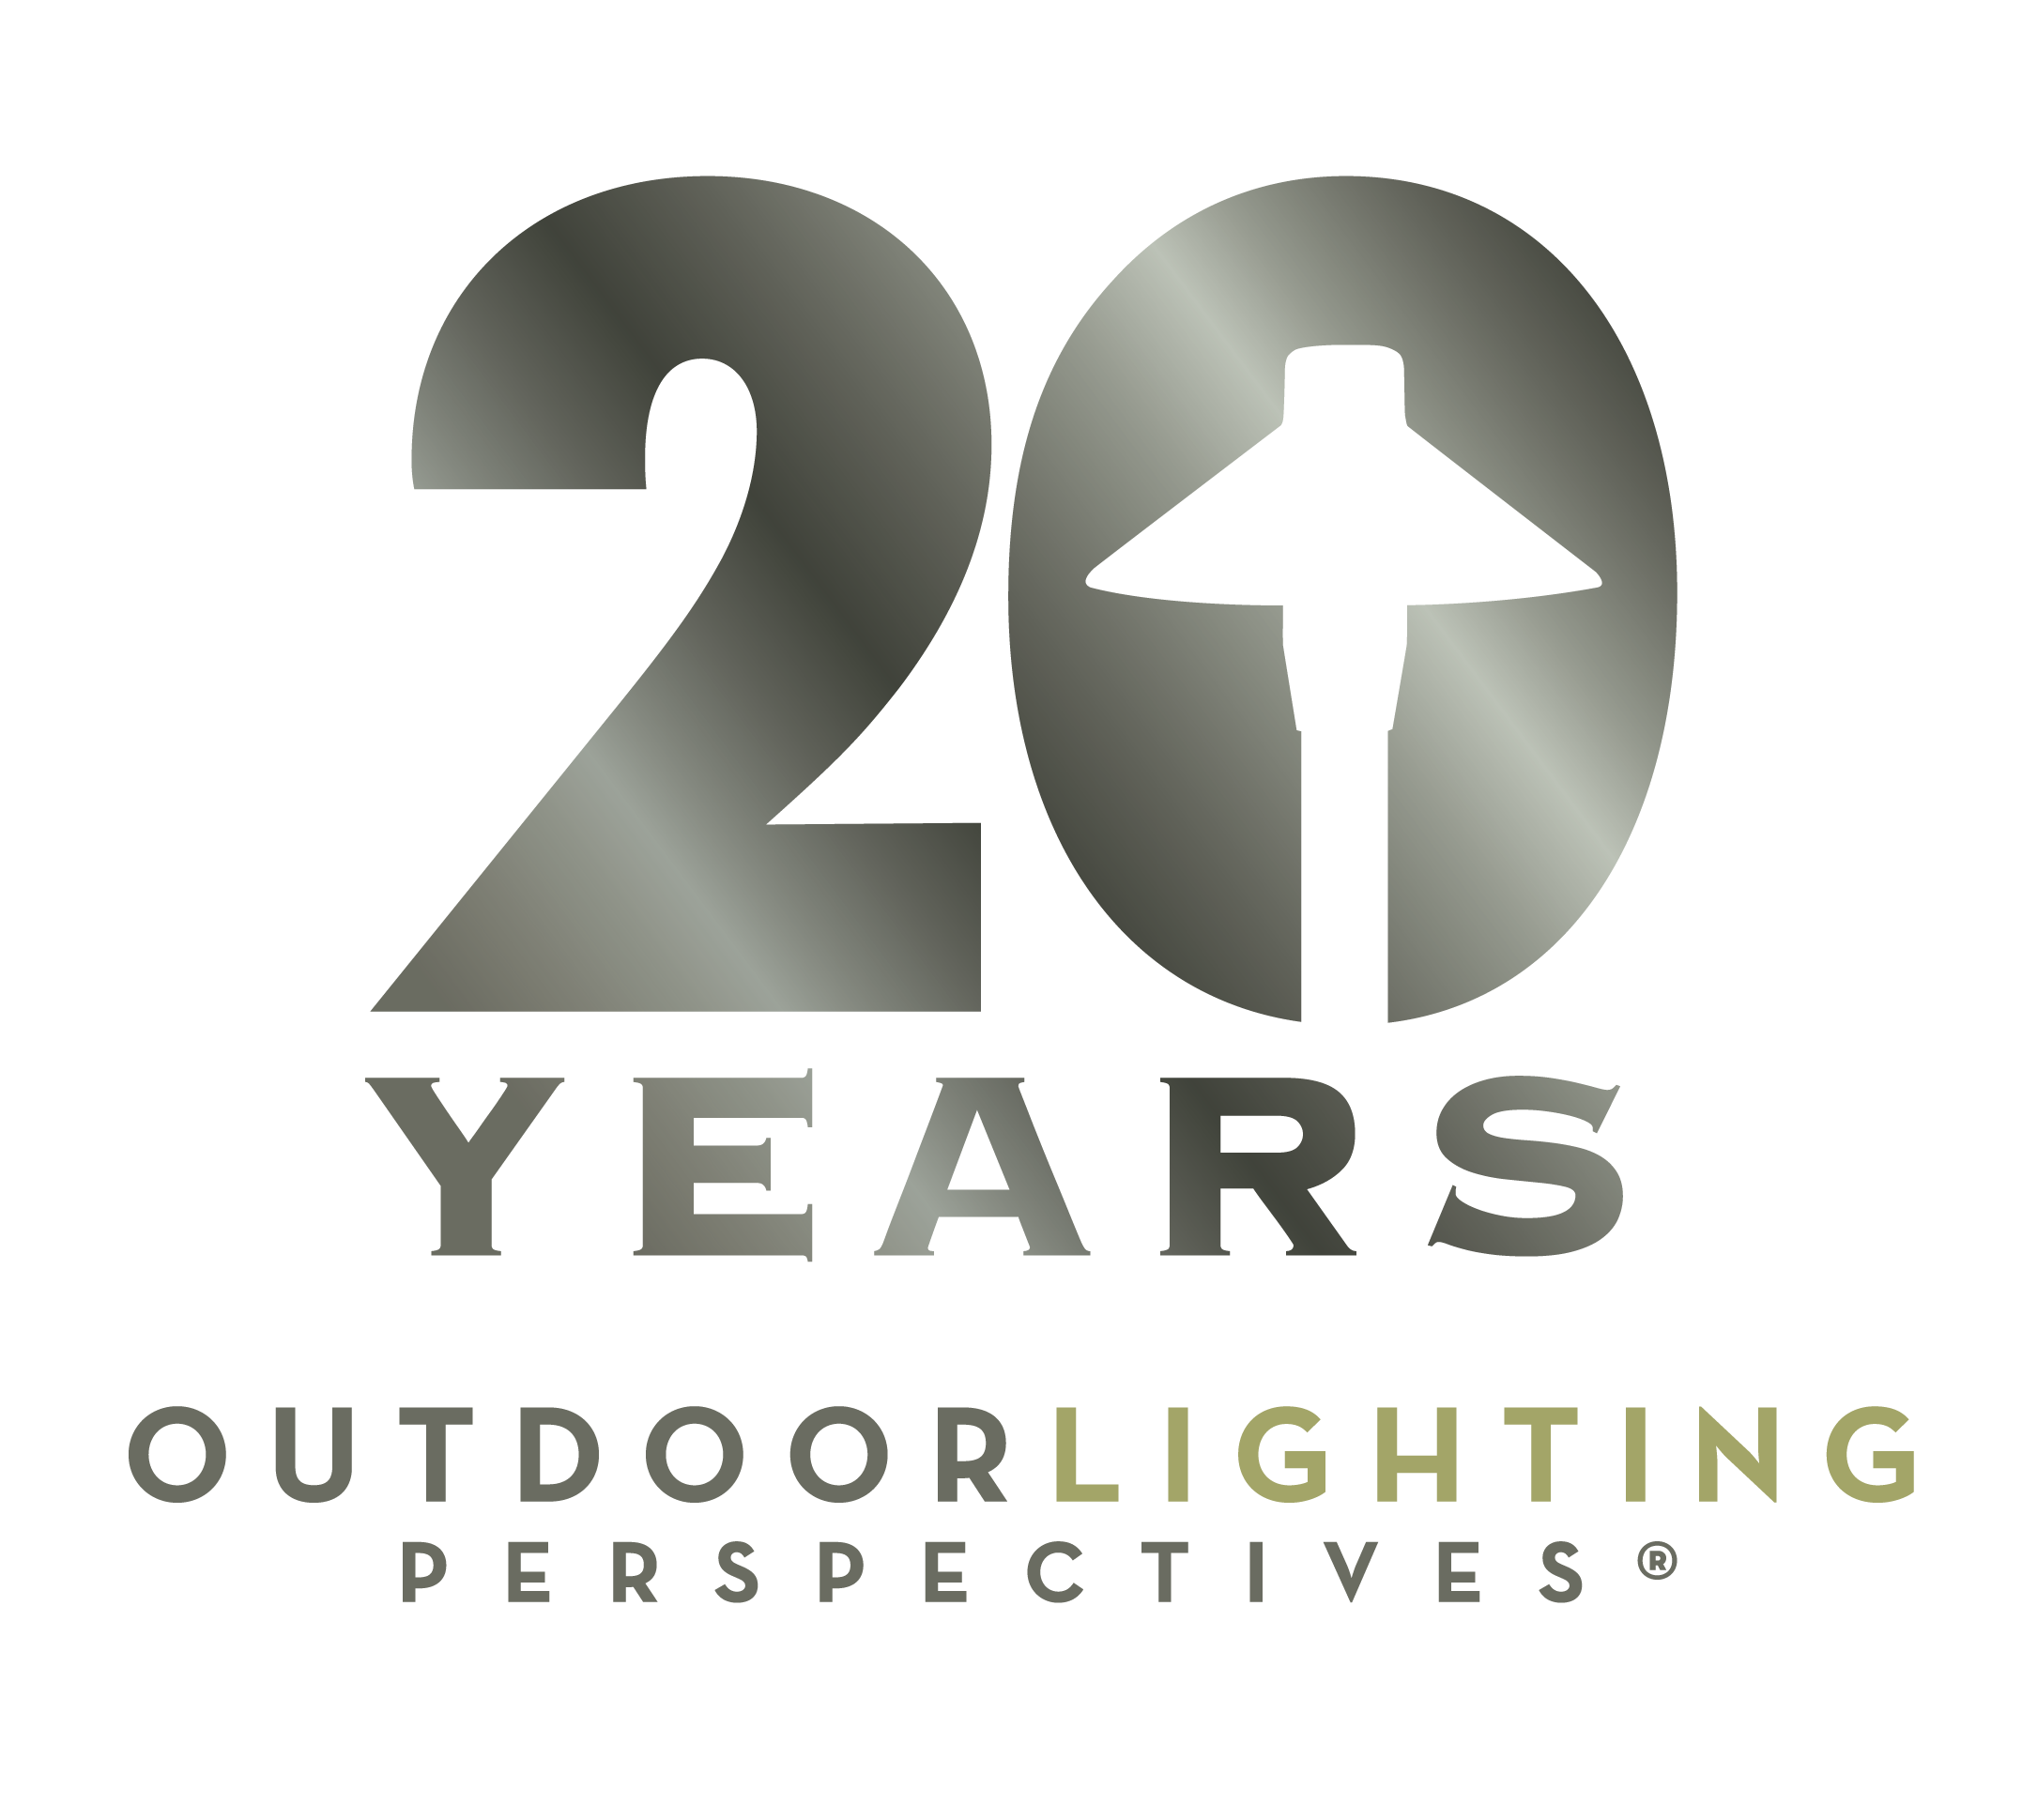 2018 Marks Our 20th Anniversary Serving The Lighting Needs Of